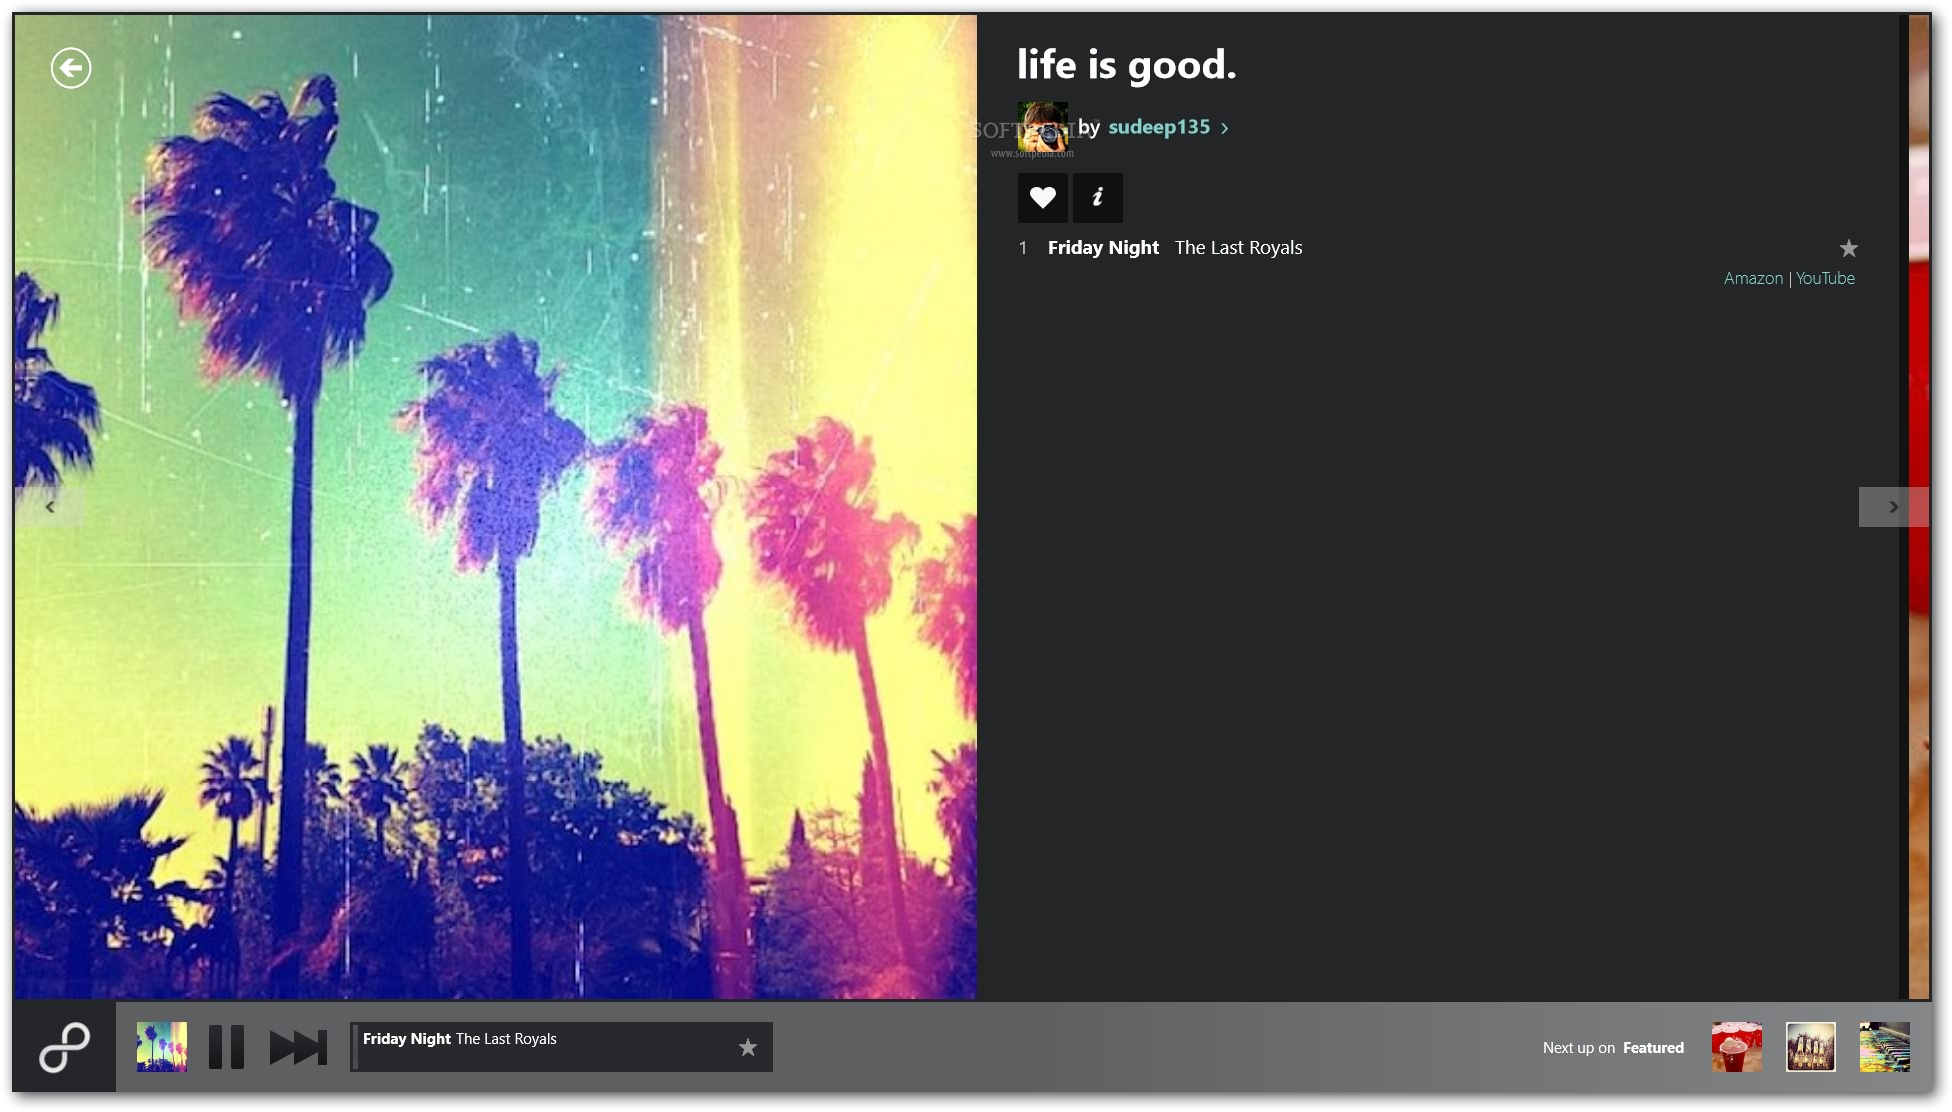 Official 8tracks Radio App For Windows 8 Impresses With